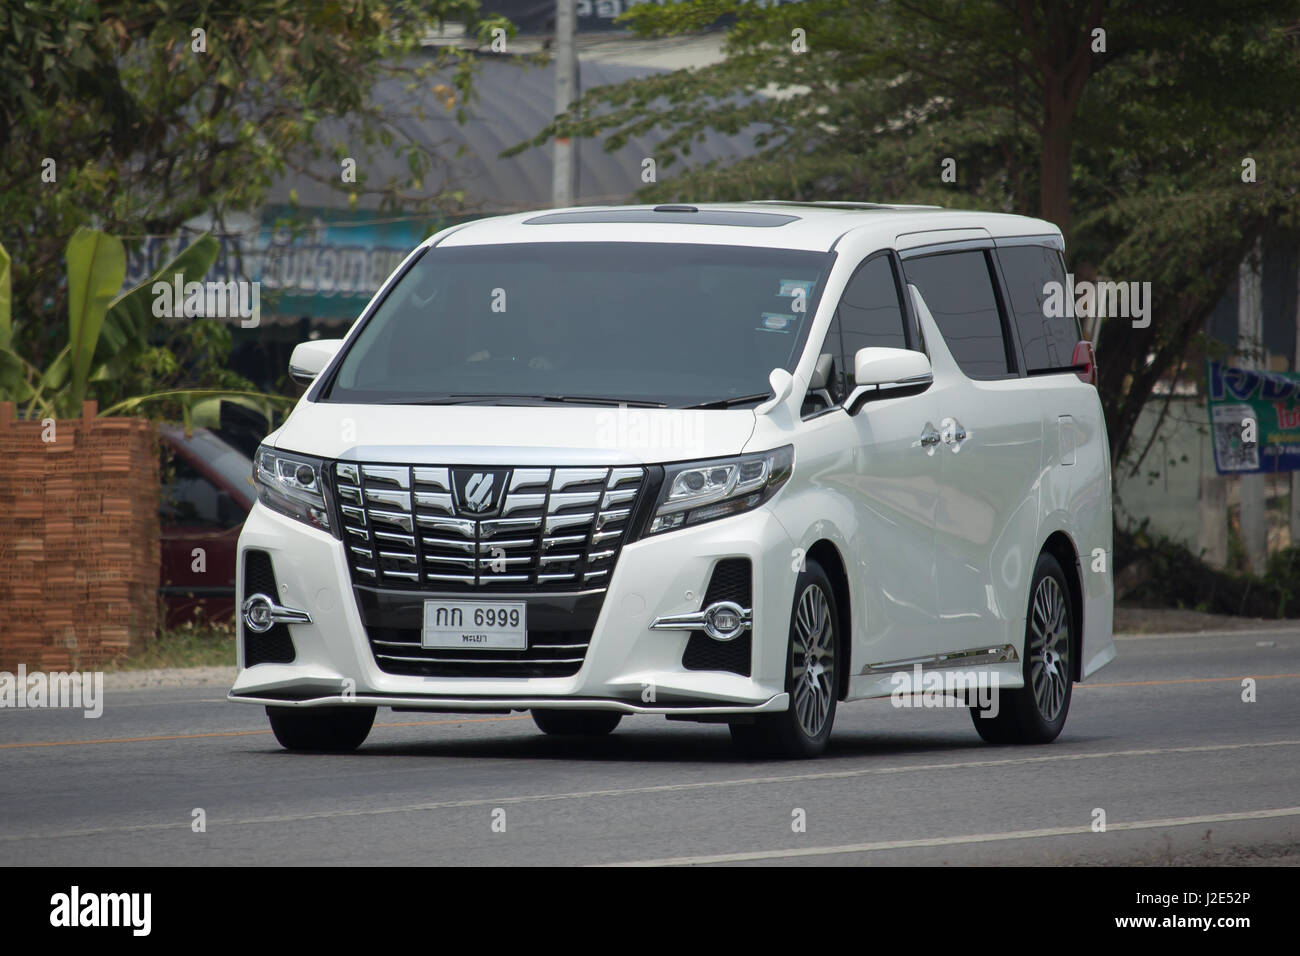 CHIANG MAI, THAILAND -APRIL 23 2017: Private Toyota Vellfire